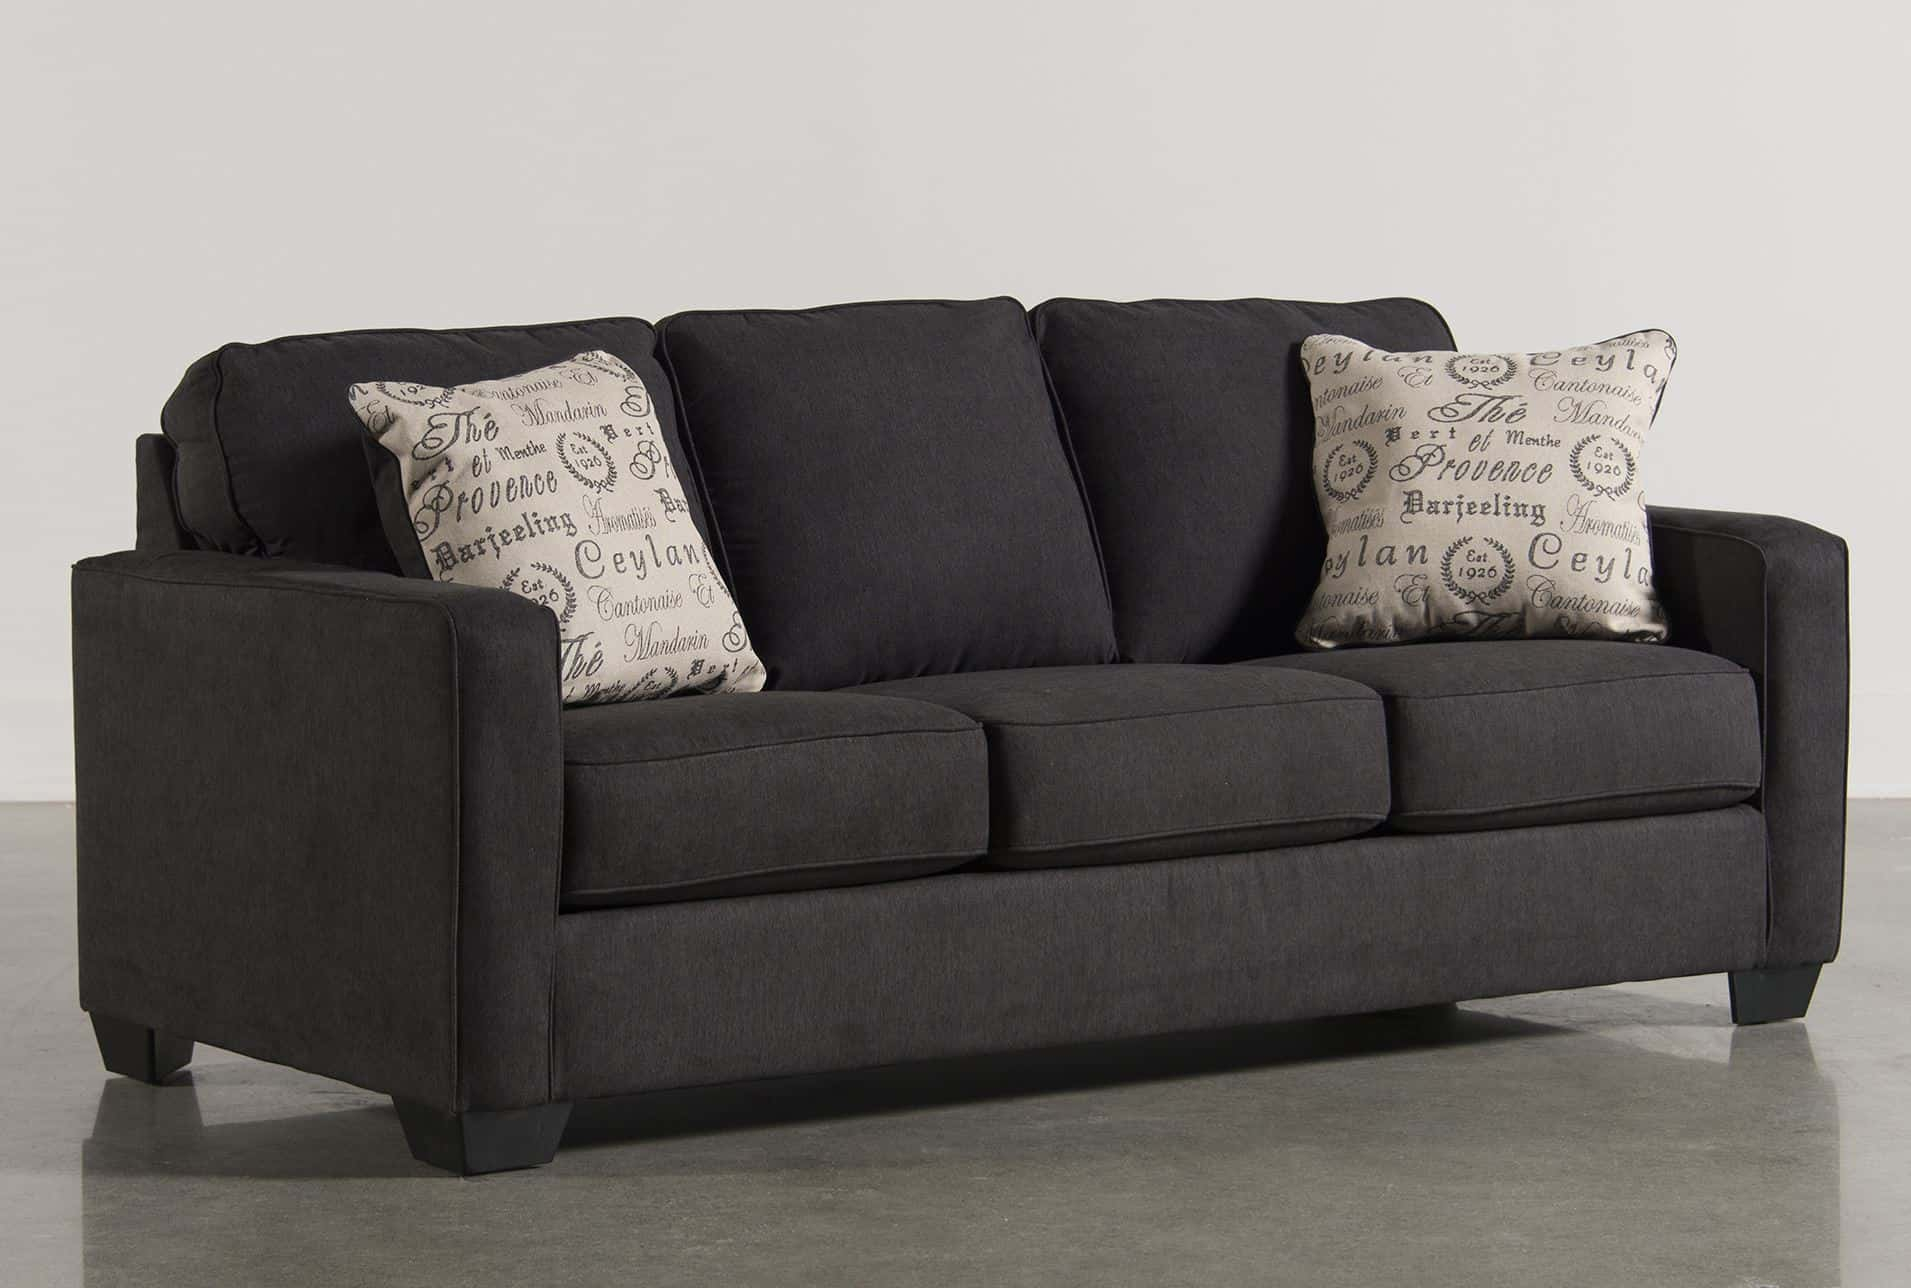 A Right Sofa for Your Home & How To Find It Decoration Channel